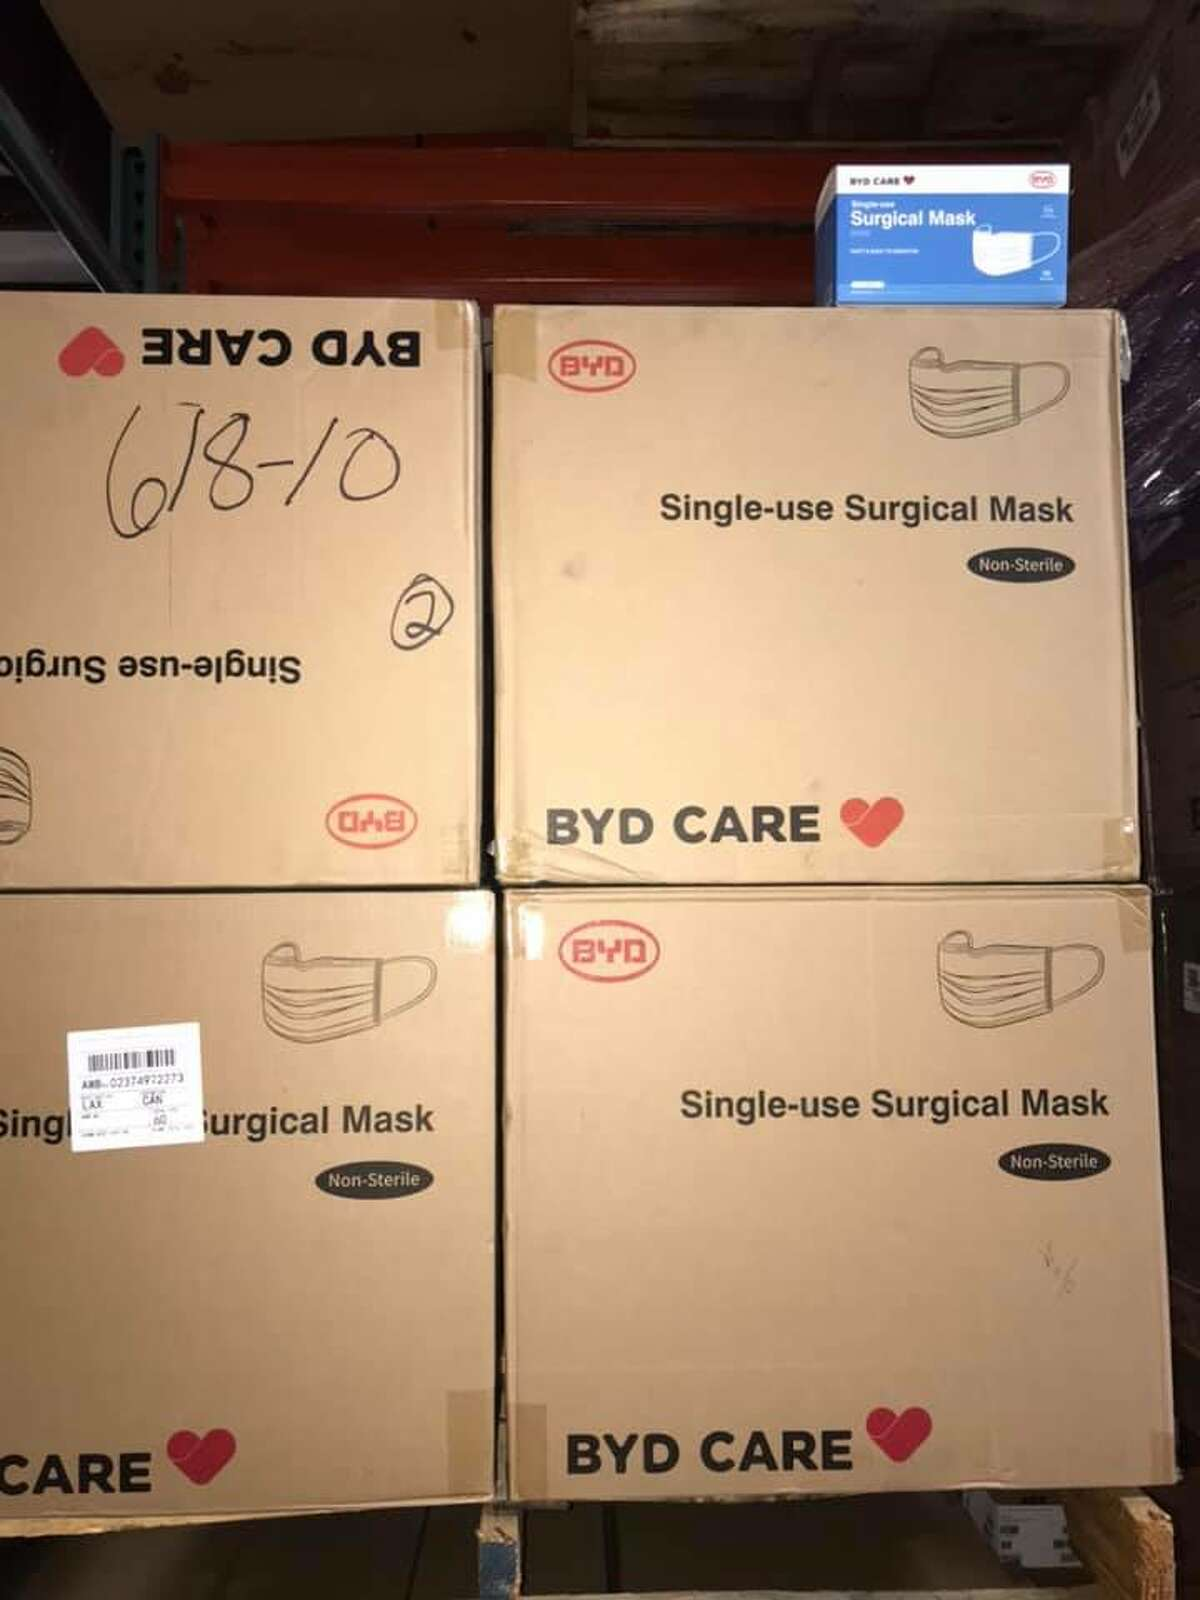 Everyone will be required to wear face masks on campus, with some exceptions such as physical education classes. Students and staff will be required to to provide their own. Boerne ISD ordered 86,000 masks and 1,200 face shields, which will be used for students or staff who forget or lose their mask during the school day.